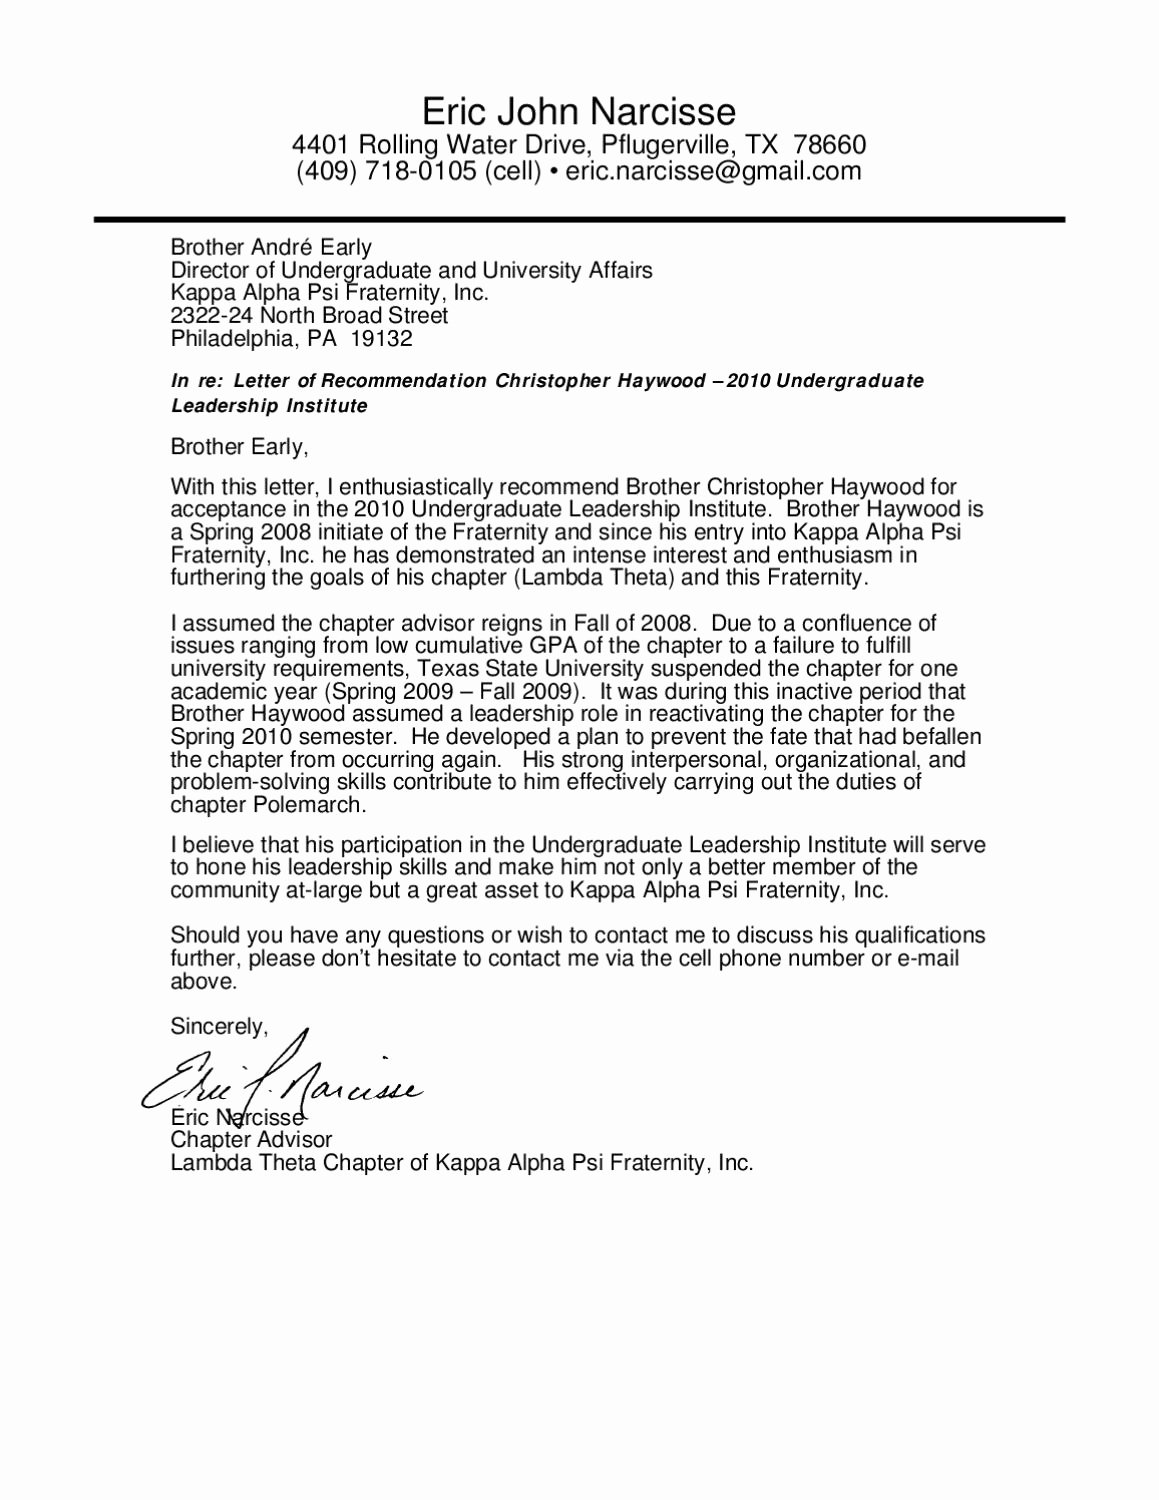 Sorority Recommendation Letter Template Best Of Letter Of Rec by Chris Haywood issuu